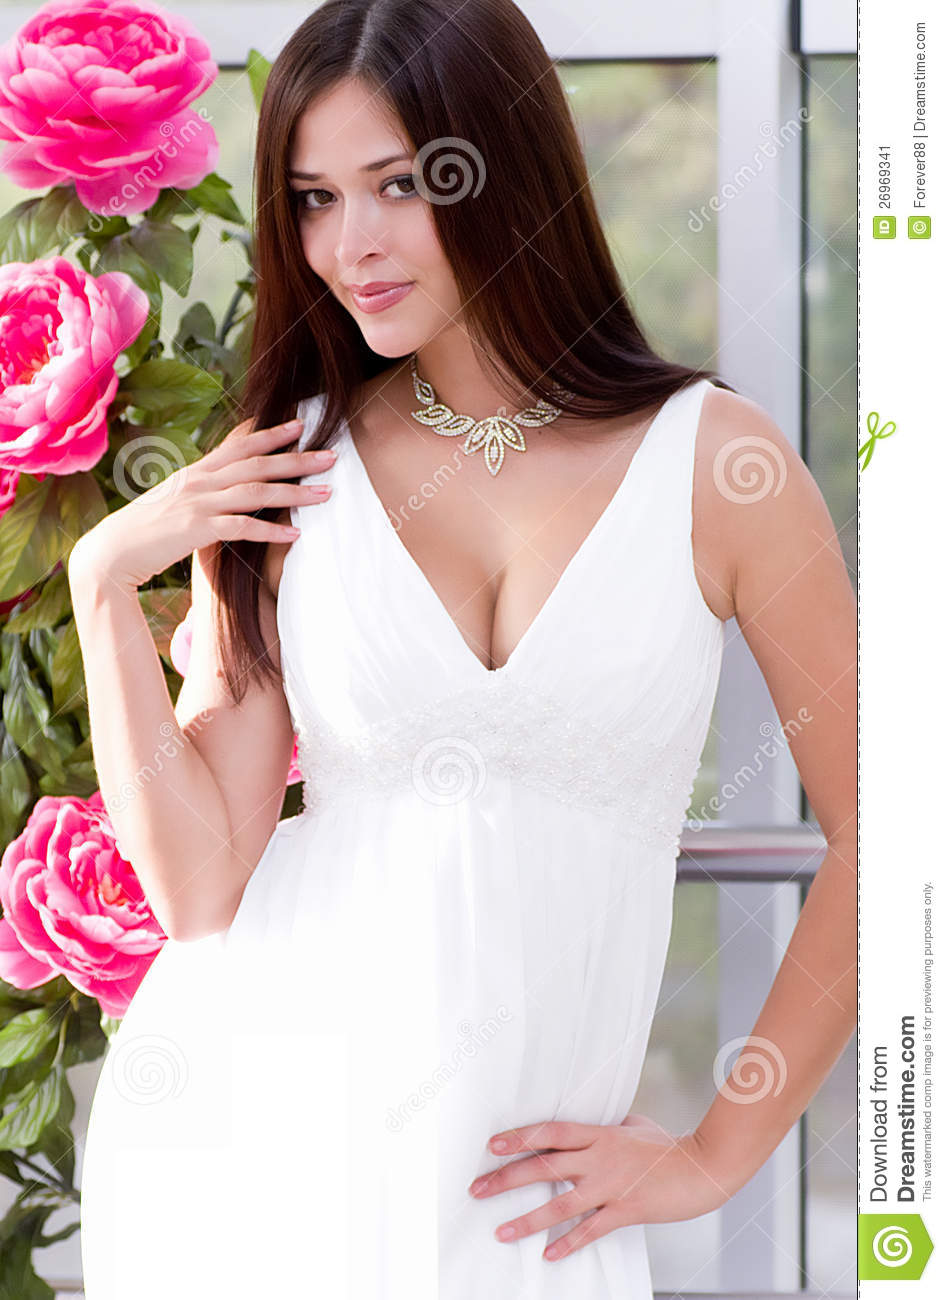 White dress and makeup - Beautiful Bride Dress White